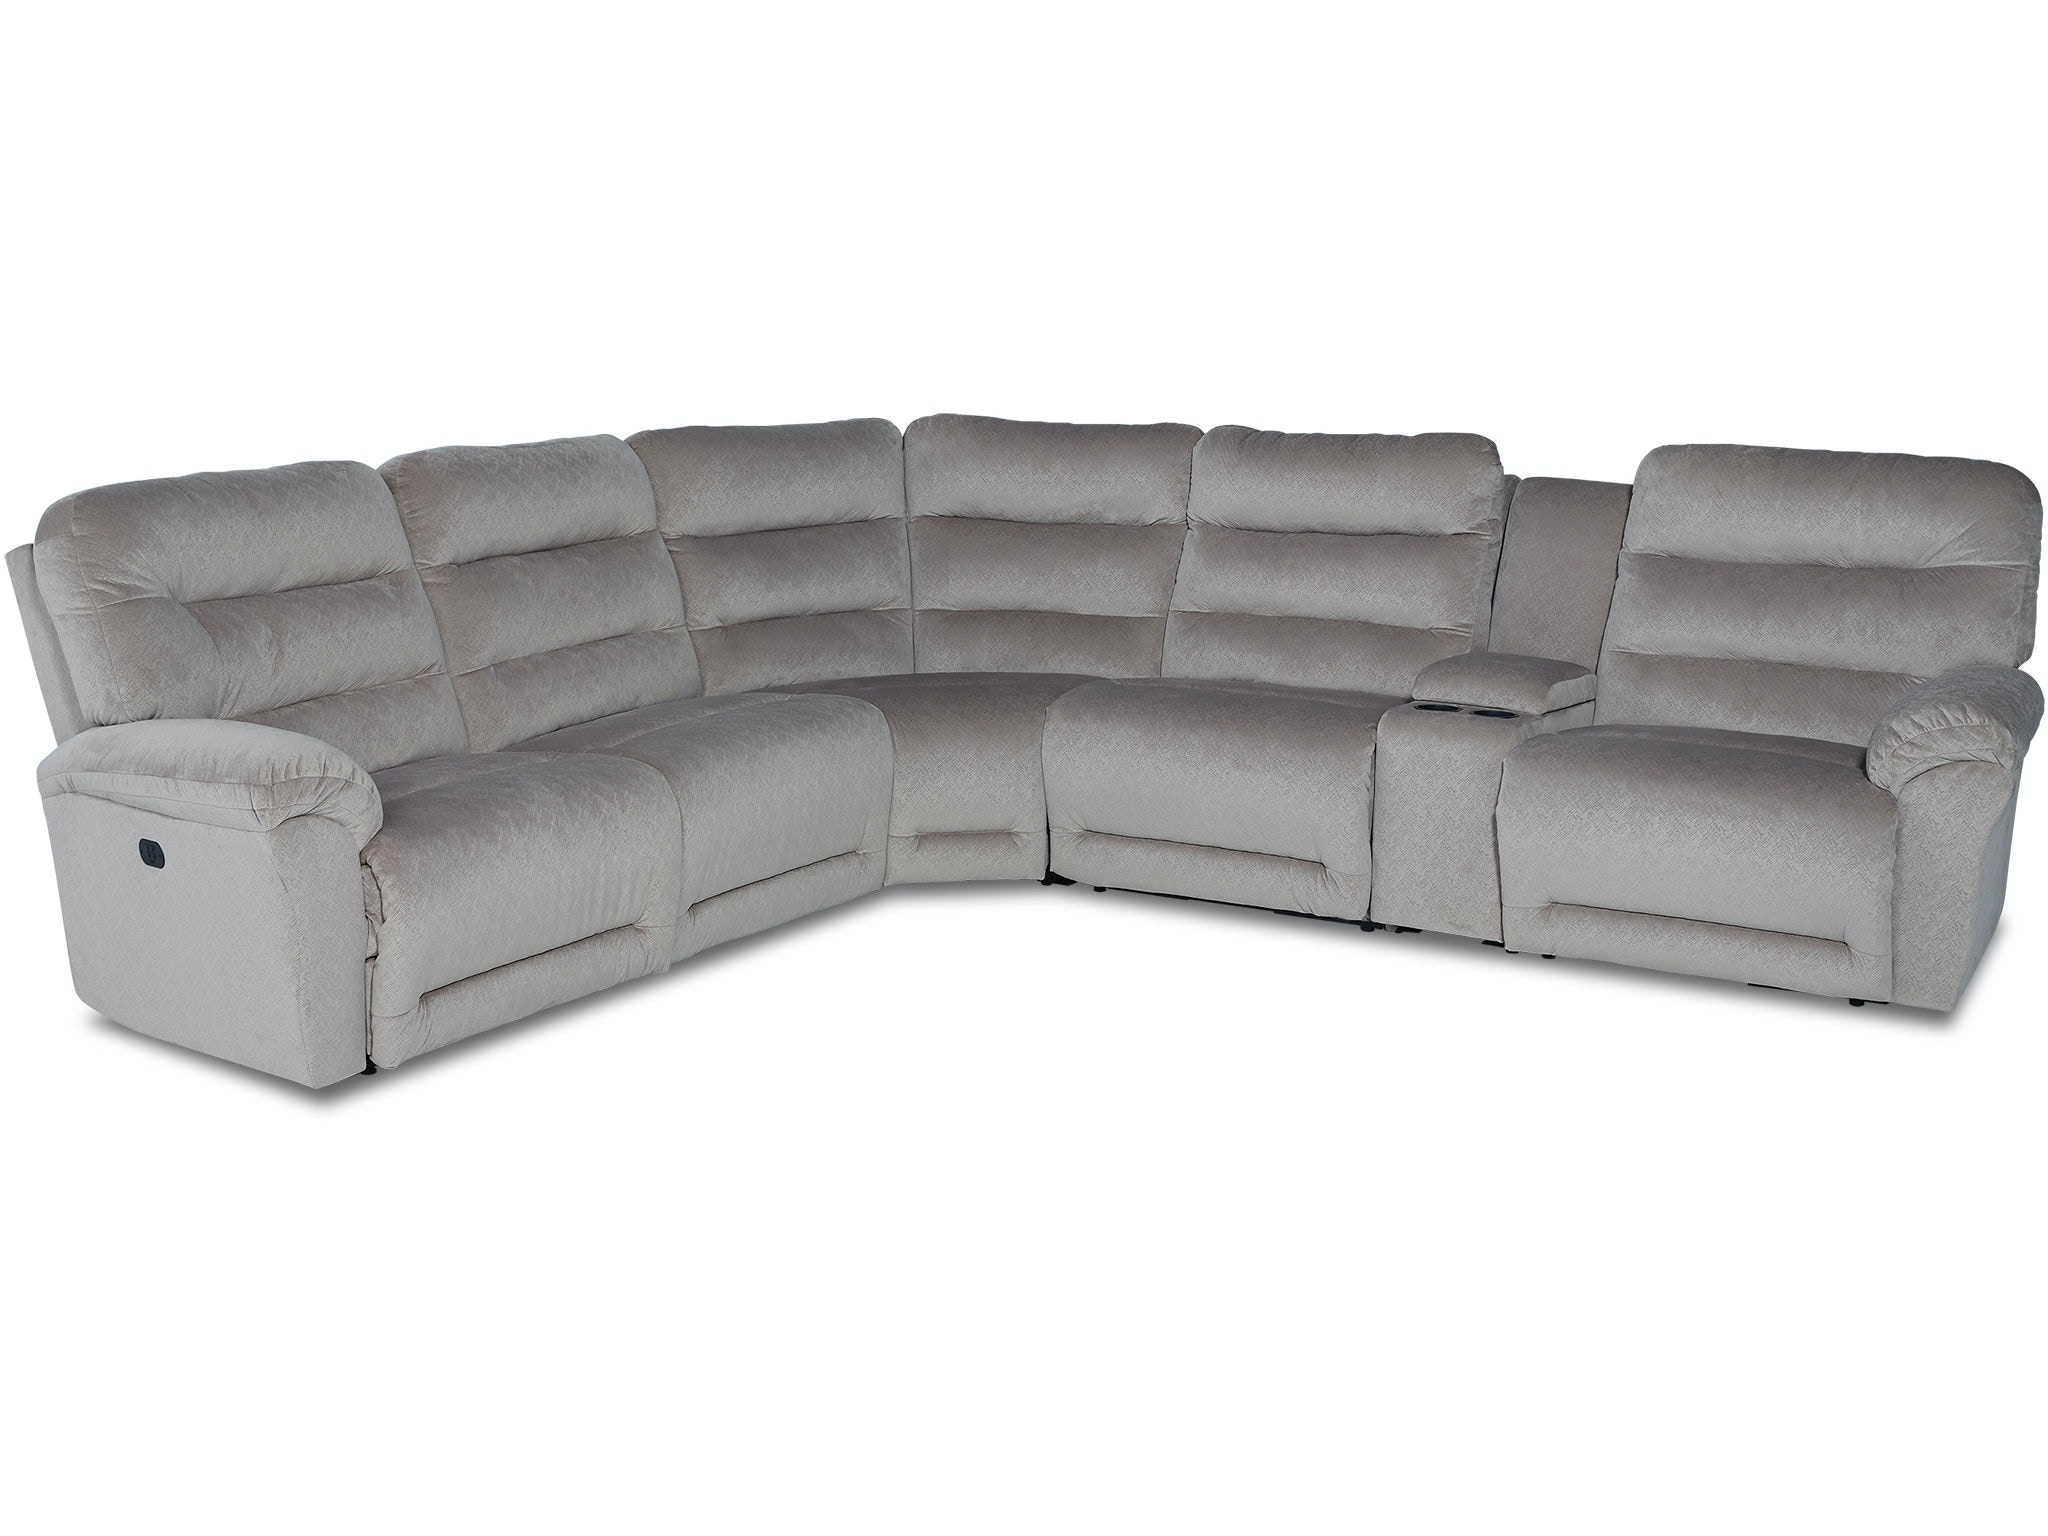 best chairs c o home furnish wicker desk and chair furnishings living room shelby sectional m600 sect